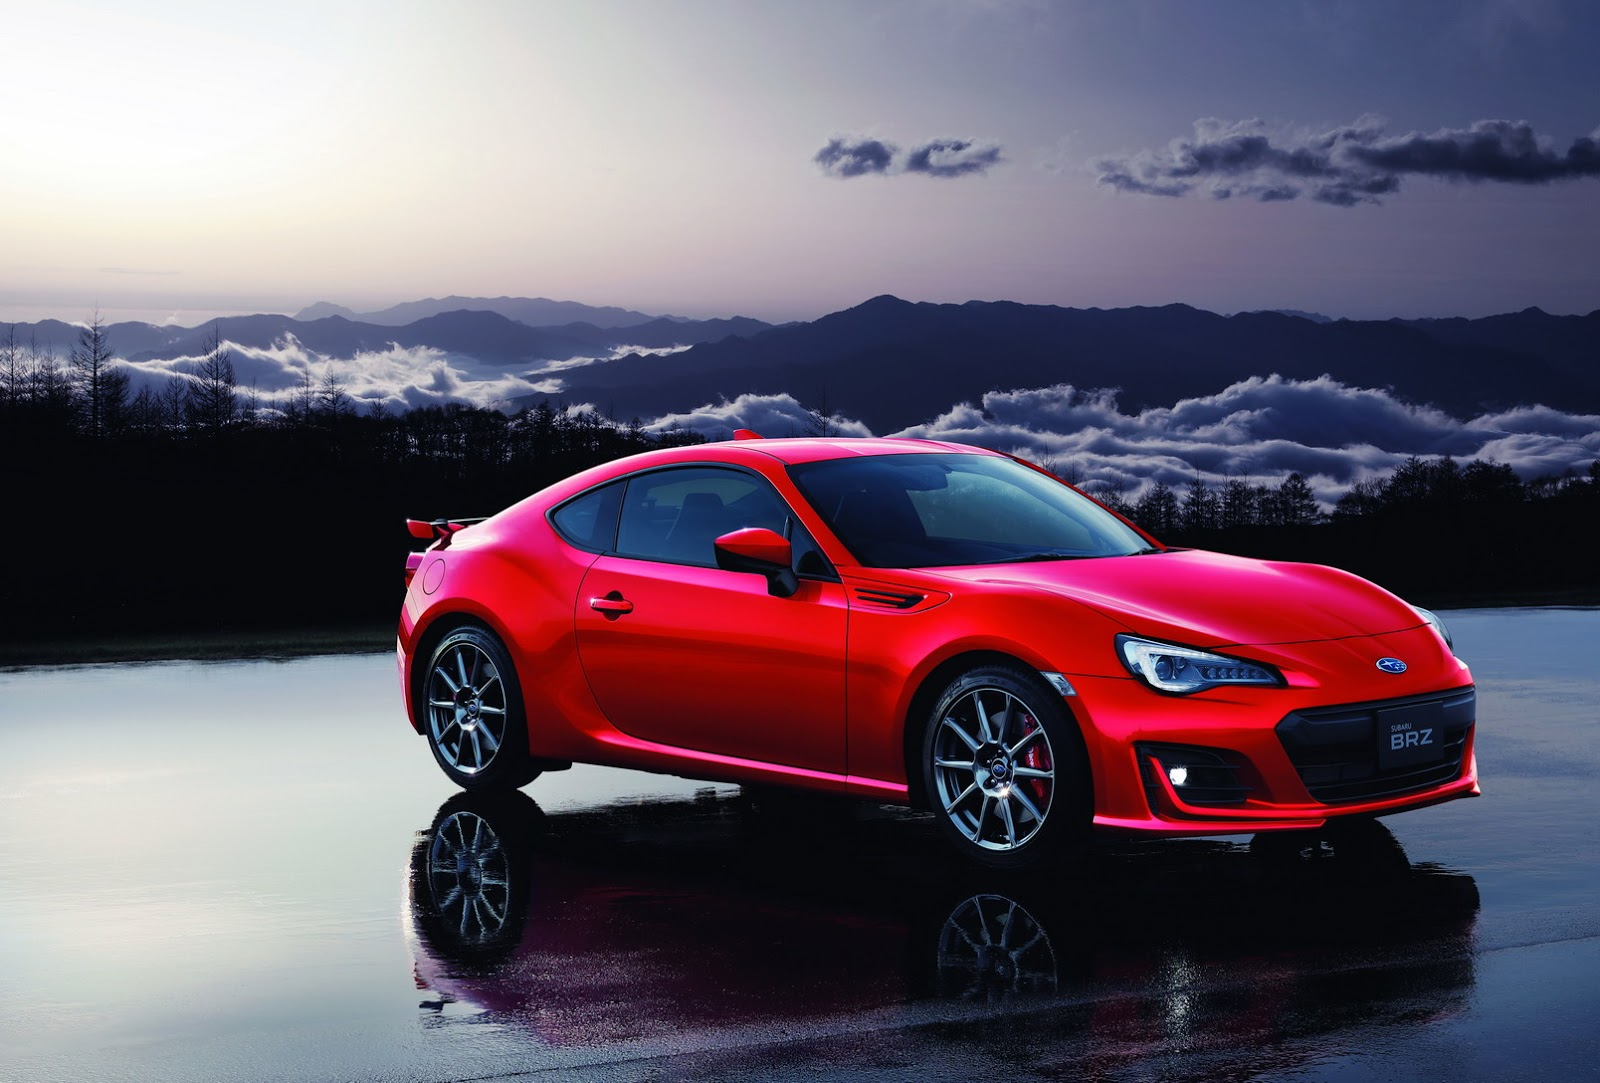 subaru brz gt launched in japan with sachs dampers autoevolution. Black Bedroom Furniture Sets. Home Design Ideas